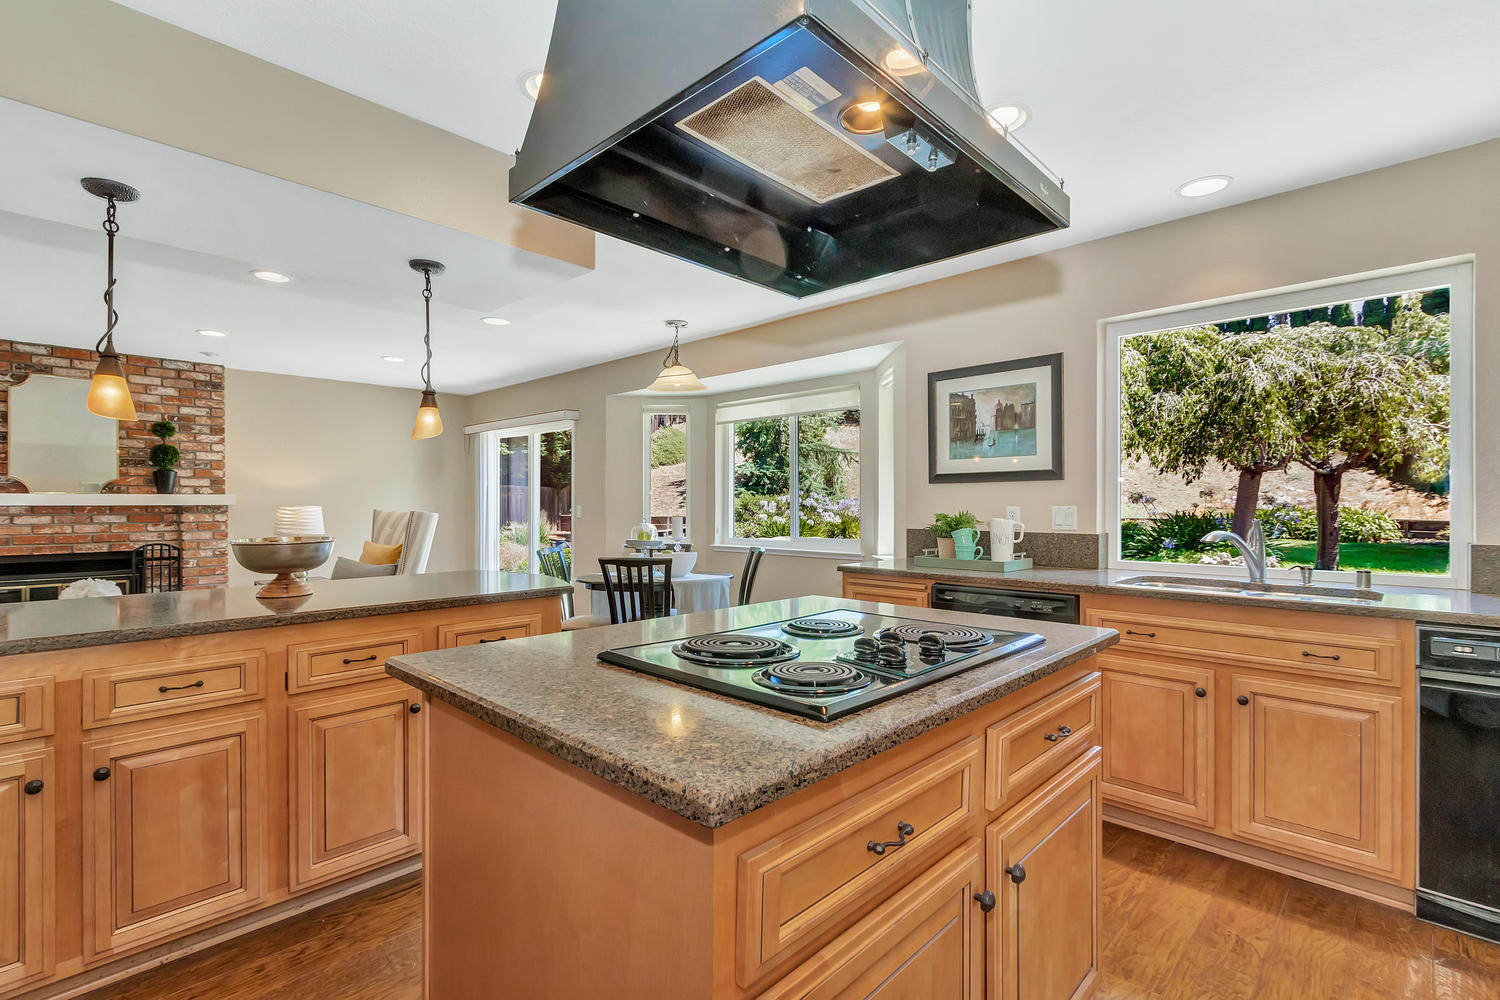 This spacious kitchen has beautiful backyard views & is filled with natural light!